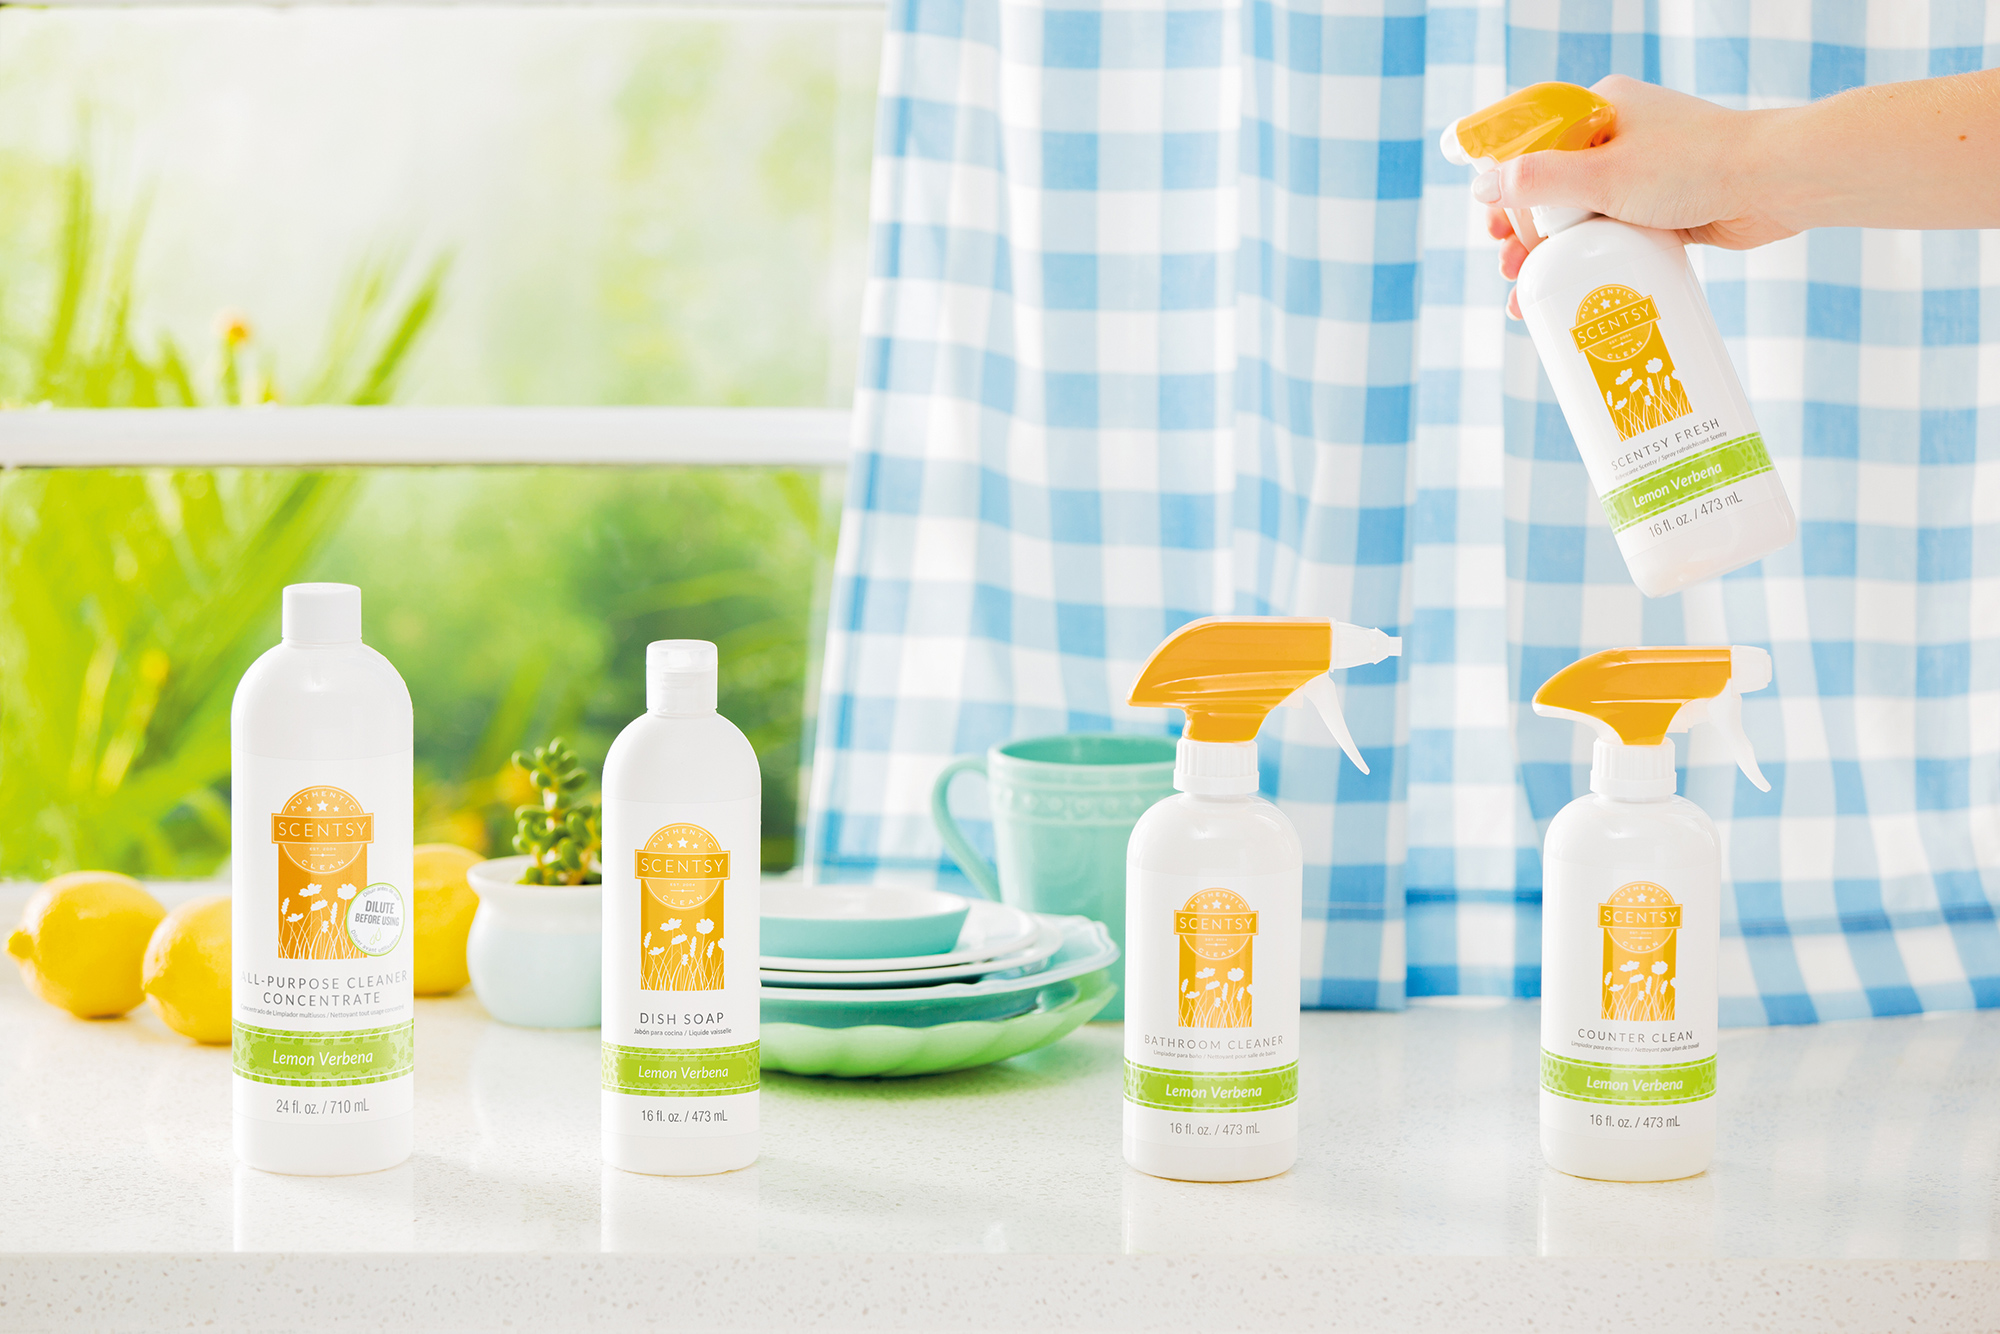 Lemon Verbena Scentsy Clean products